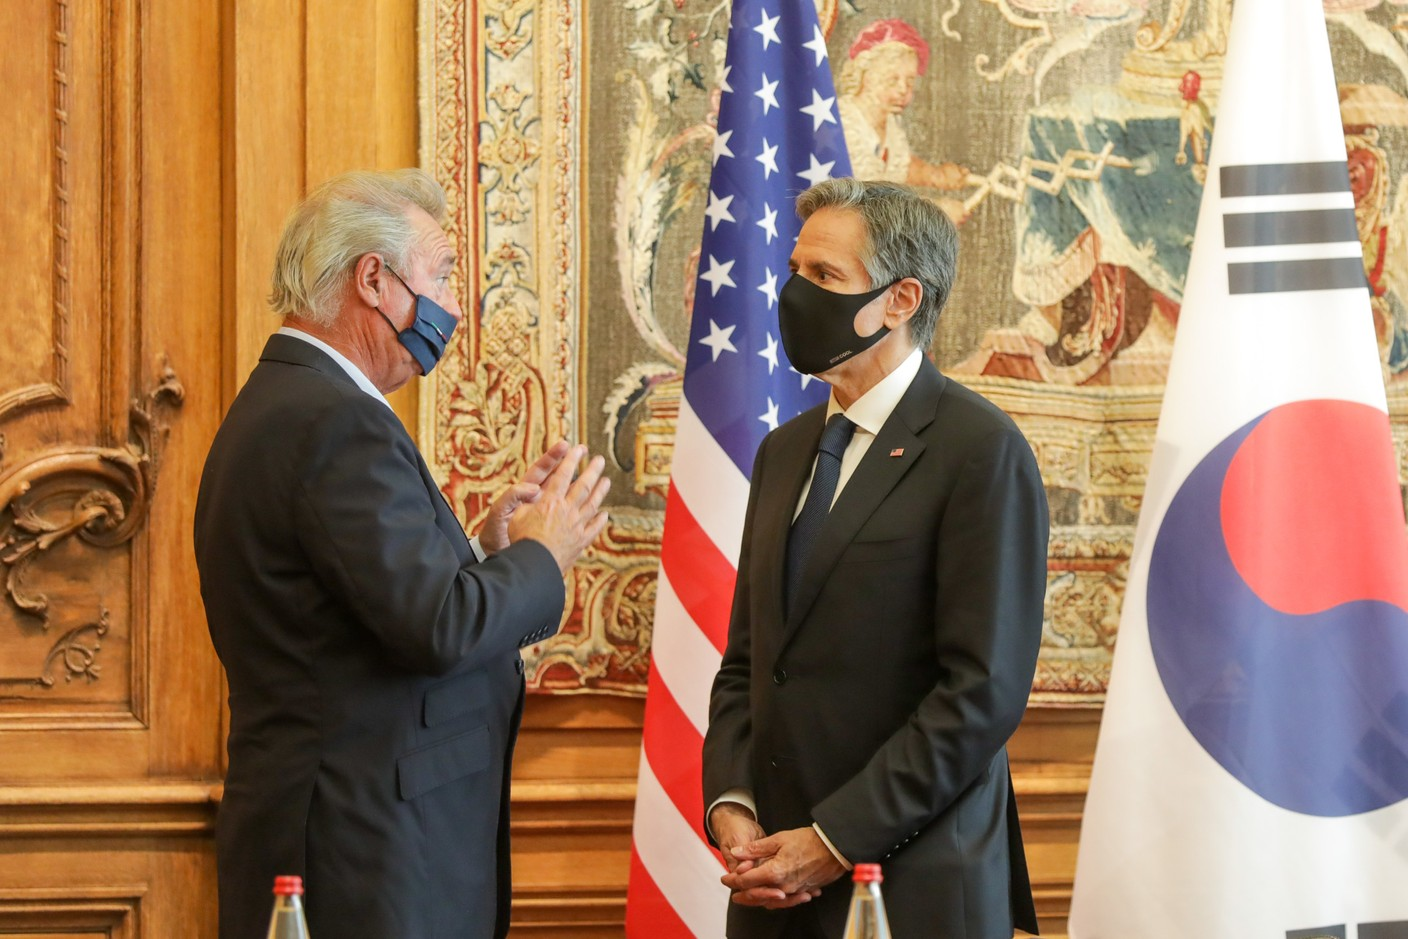 (from l. to r.) Jean Asselborn, Minister for Foreign and European Affairs; Antony Blinken, Secretary of State of the United States of America and Chair of the Council meeting at ministerial level SIP/LUC DEFLORENNE